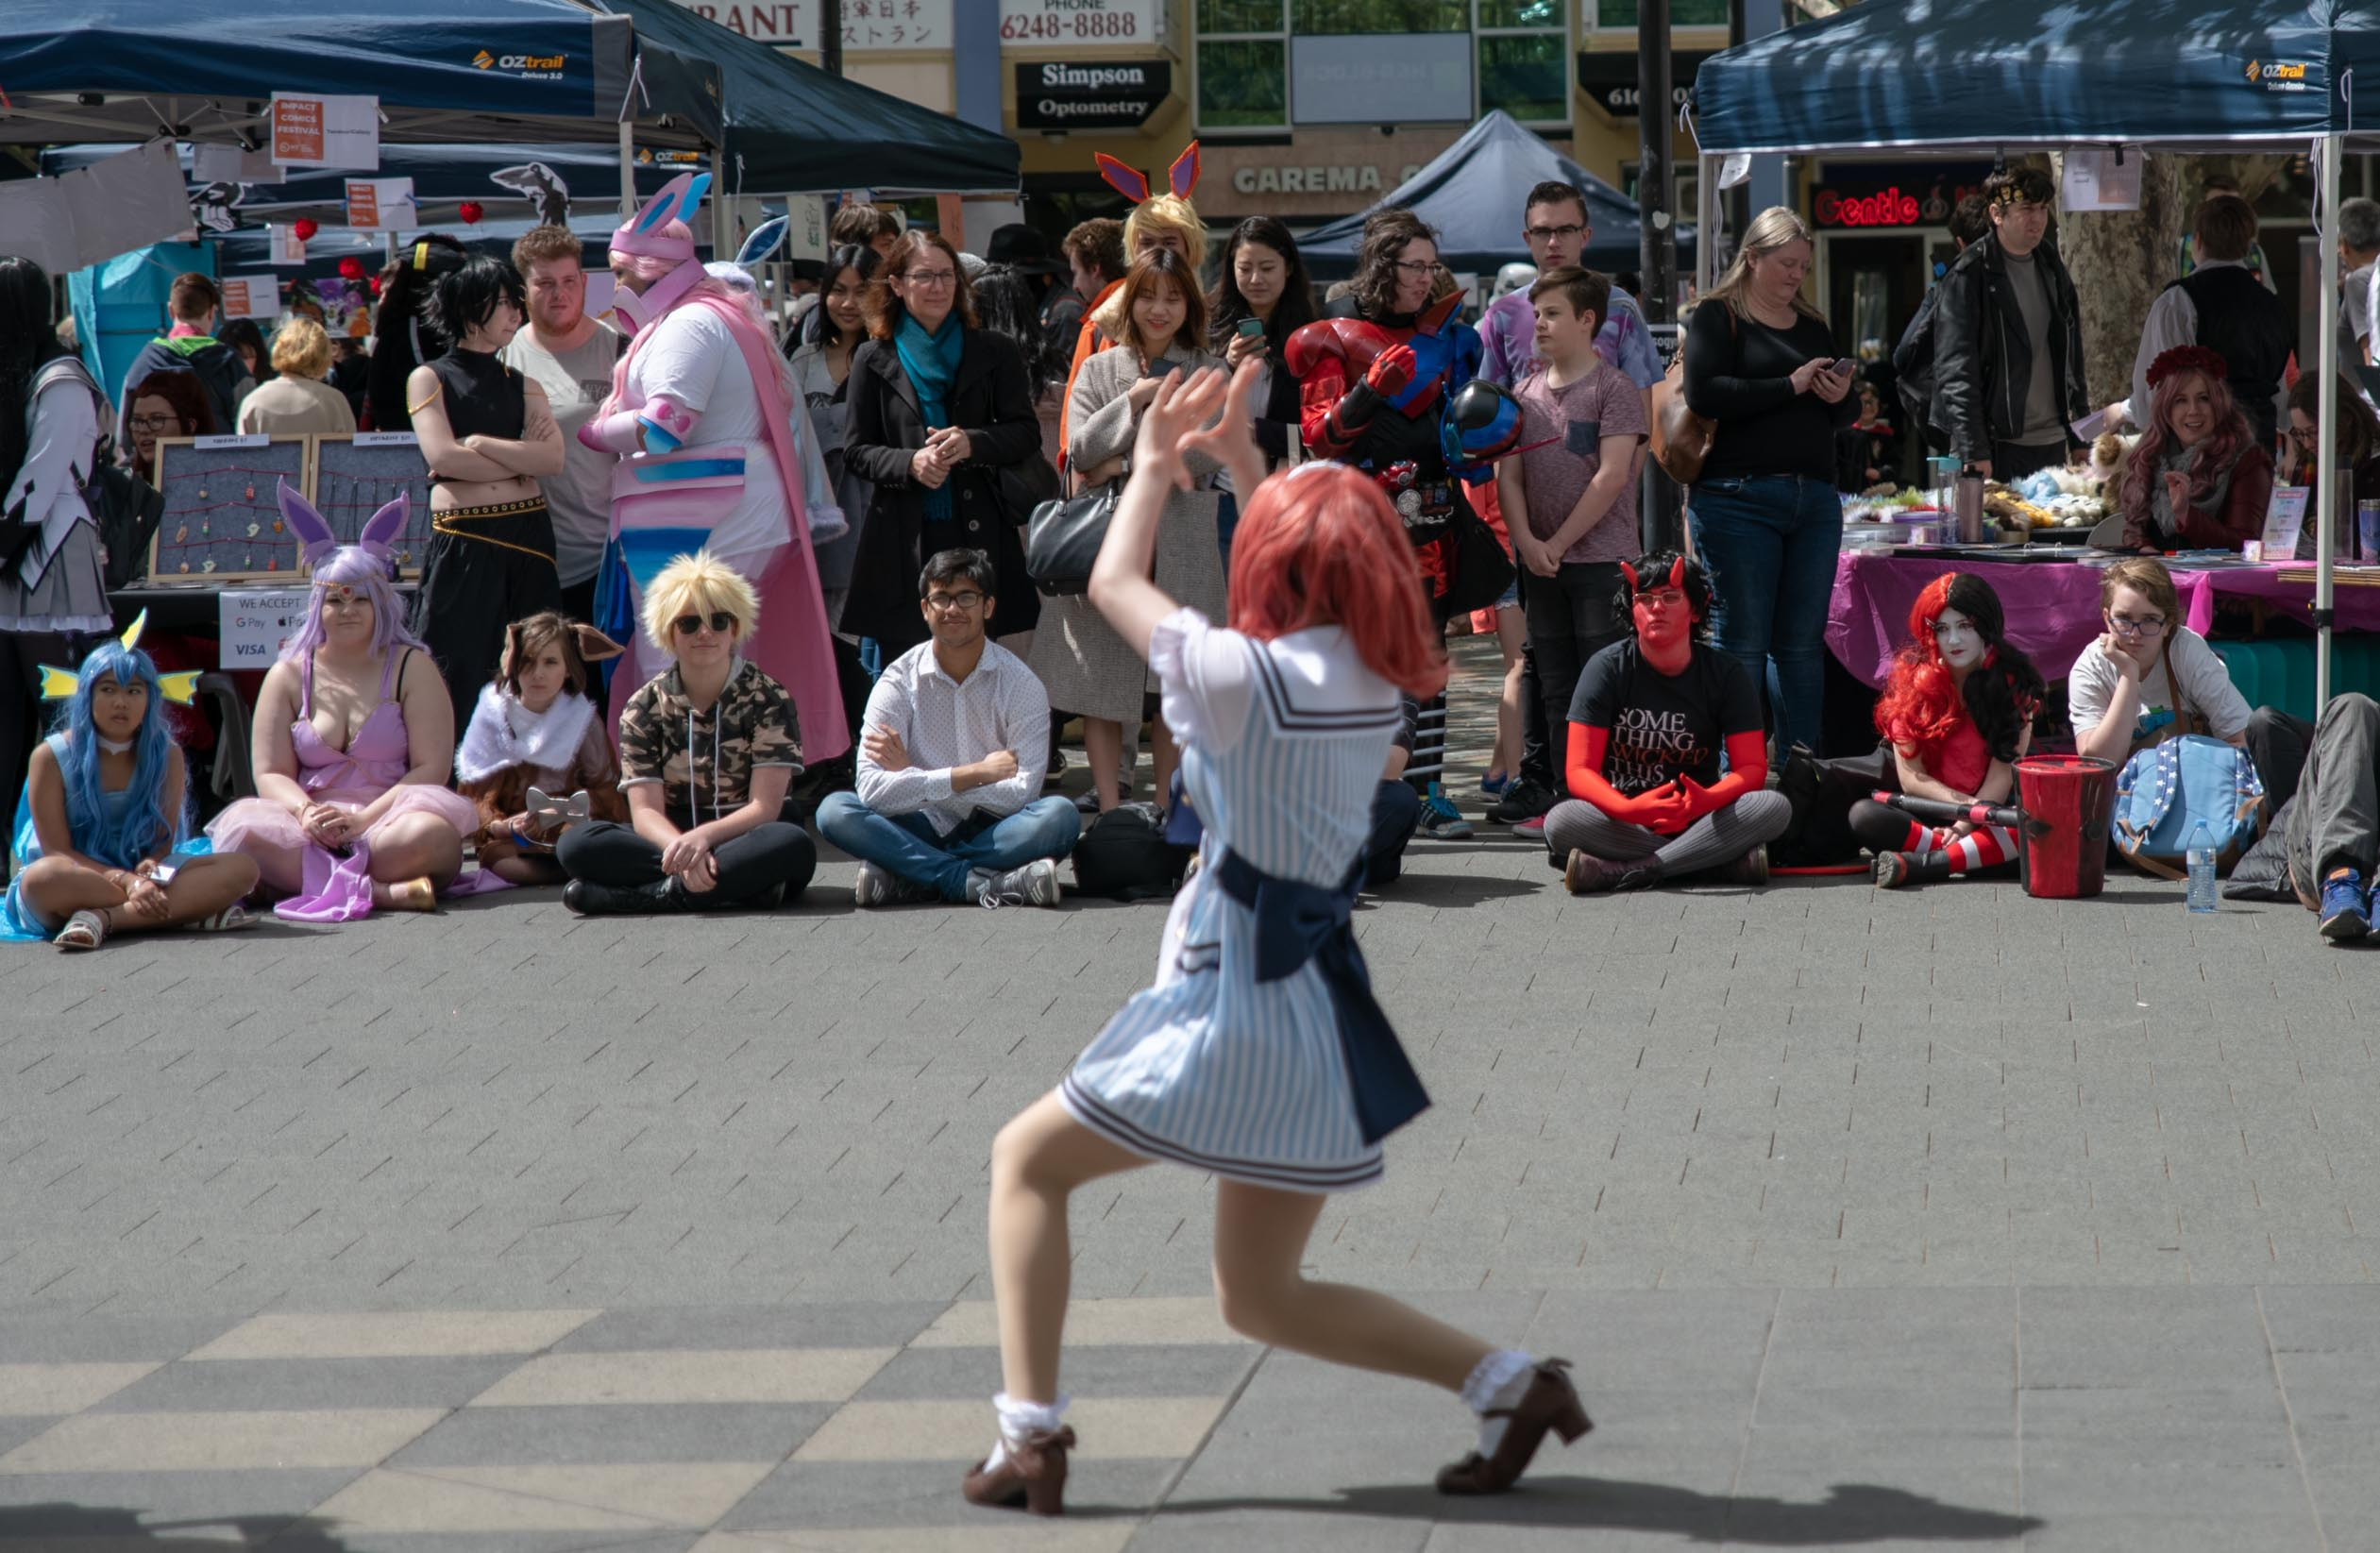 woman dancing, people watching at impact comics festival 2018